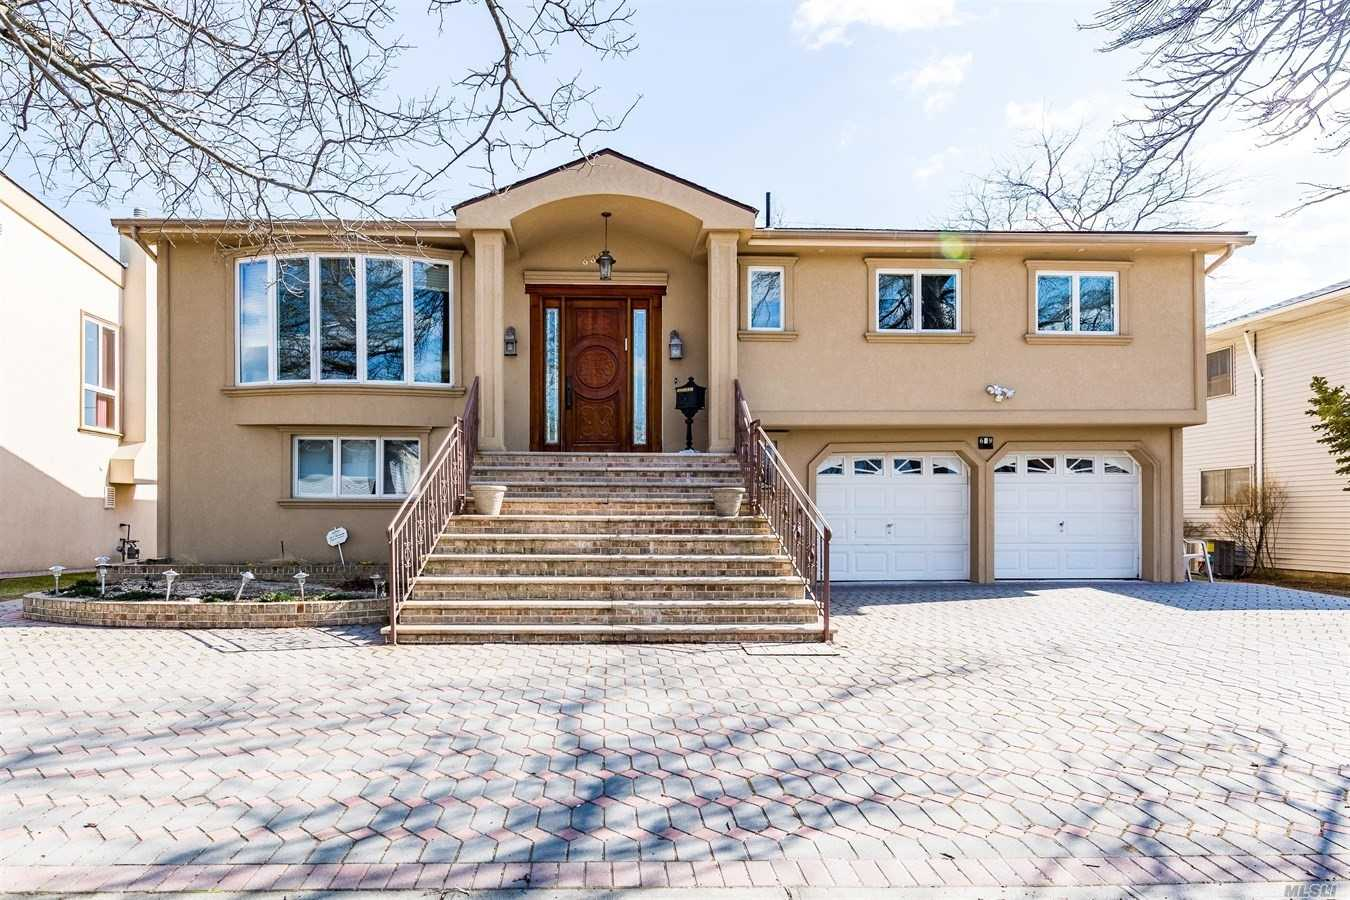 Extraordinary Expanded High Ranch Nestled In North Woodmere. Fully Equipped Rare Beauty Of Excellence & Perfection. Magnificence Designed State Of The Art Kitchen With Top Of The Line Appliances. Stunning Backyard With Waterview & Beautiful Landscaping.